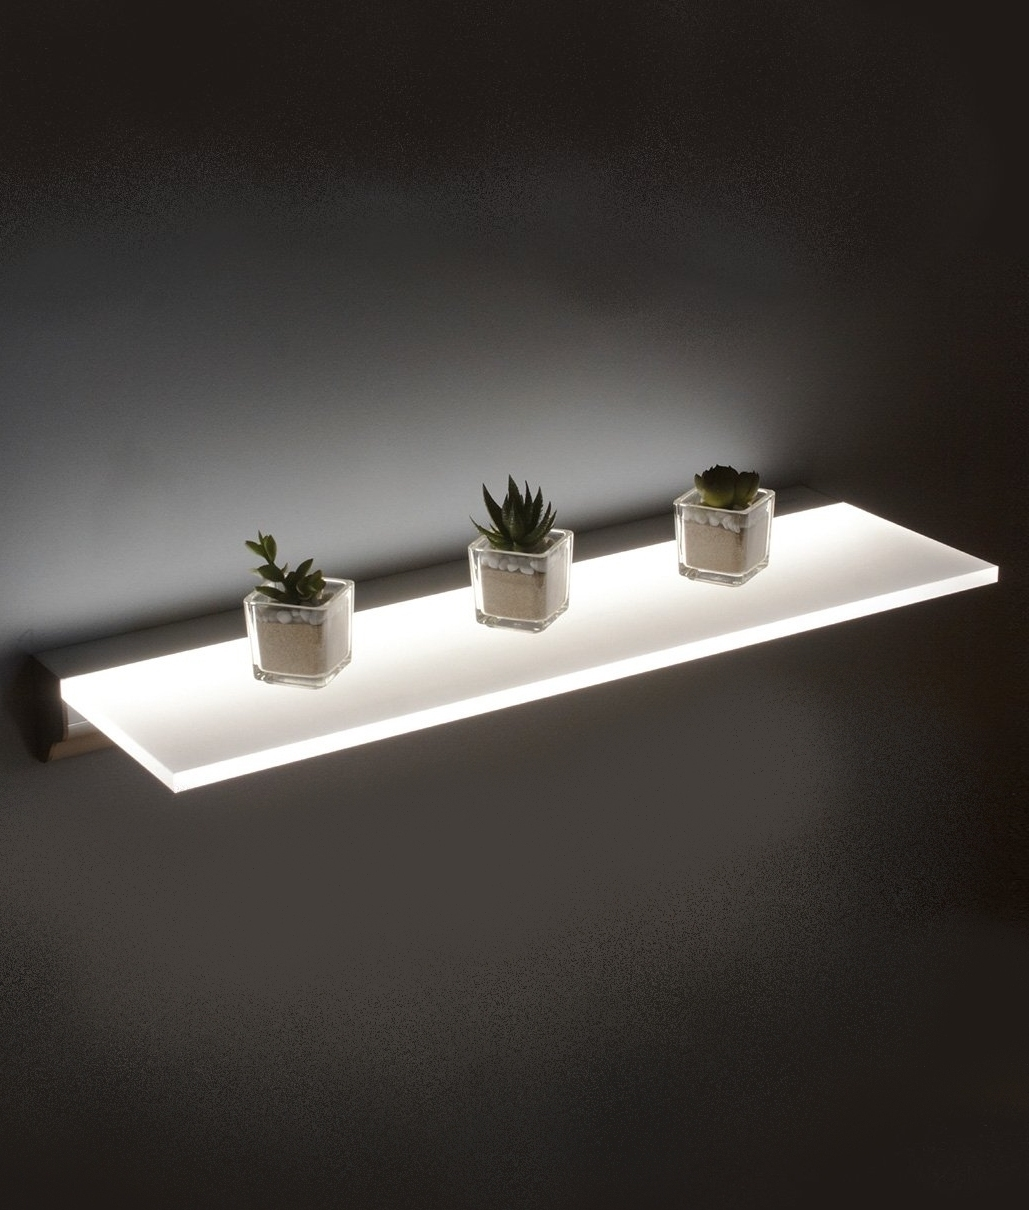 Led Opal Illuminated Shelf Two Sizes Regarding Illuminated Glass Shelf (Image 10 of 15)